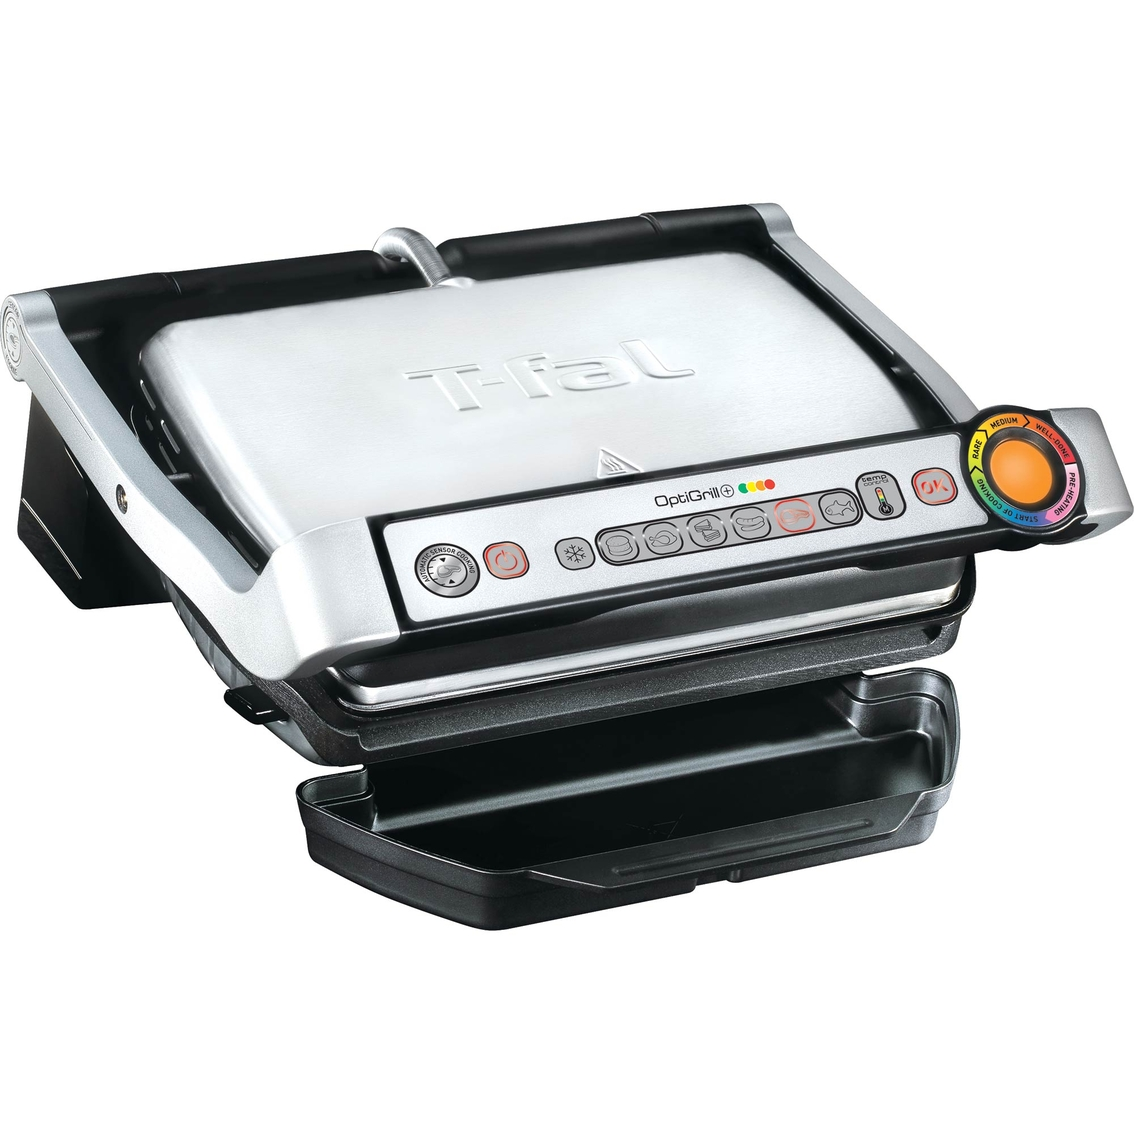 T fal opti grill plus electric indoor grill grills - T fal optigrill indoor electric grill ...